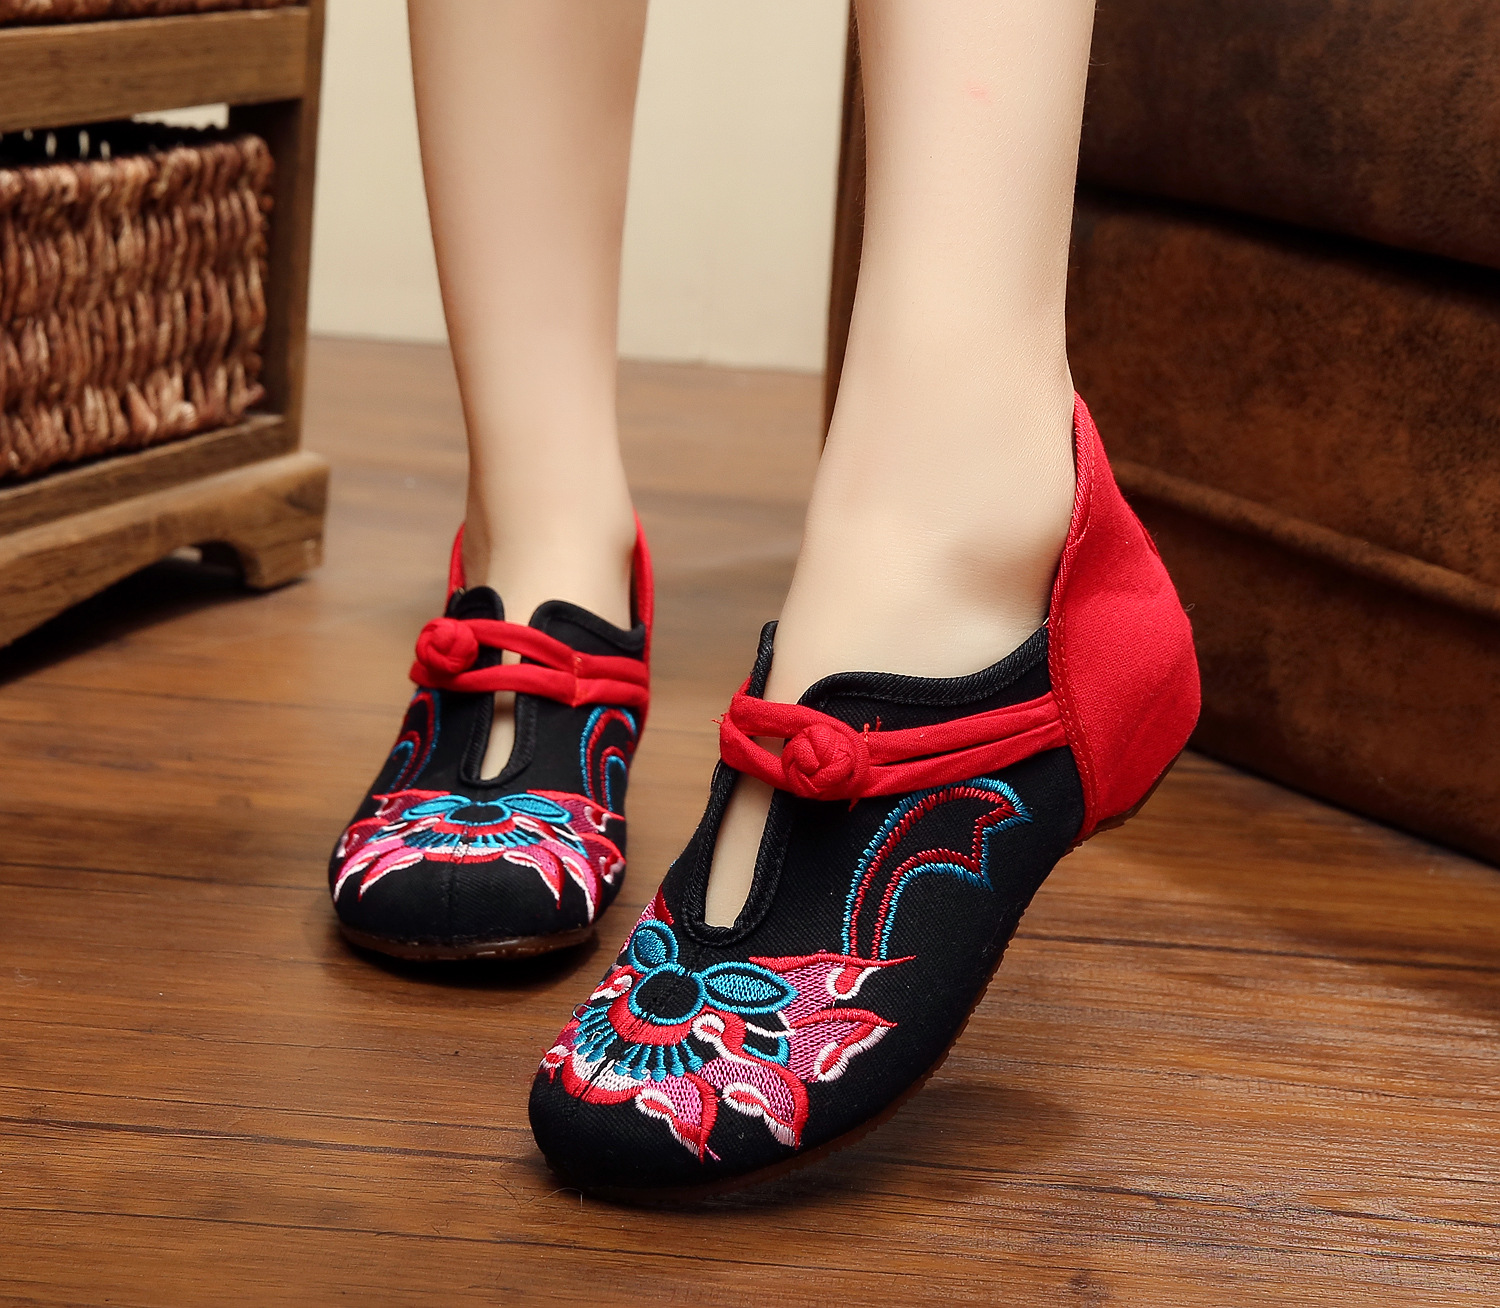 Black + red Women Shoes Old Beijing Mary Jane Flats With Casual Shoes Chinese Style Embroidered Cloth Shoes Woman Plus Size old beijing embroidered women shoes mary jane flat heel cloth chinese style casual loafers plus size shoes woman flower black